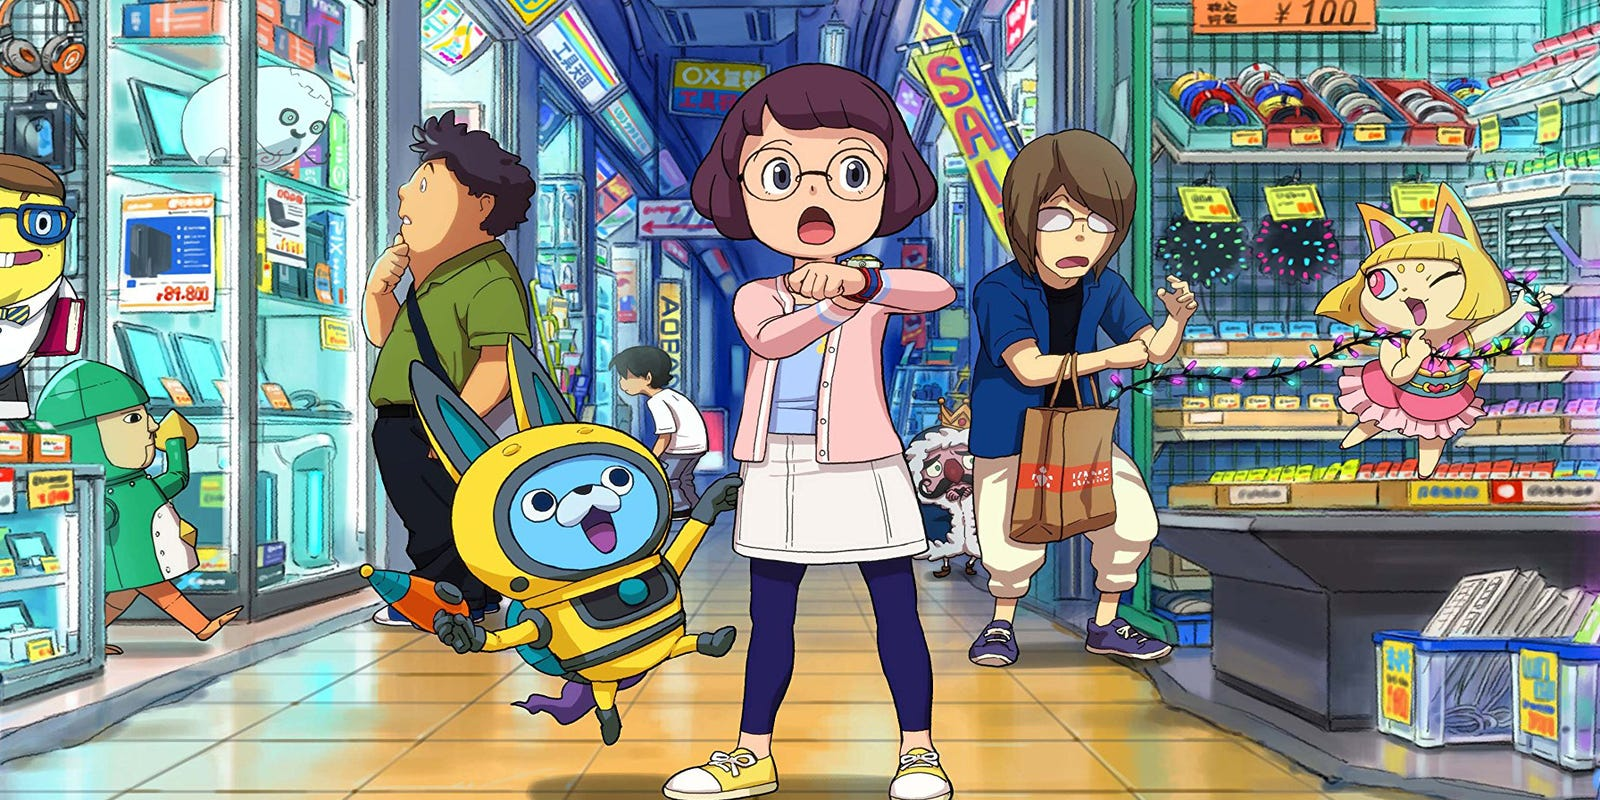 Darn Tootin Yo Kai Watch 3 Review Technobubble Don't hesitate to try them out when you can. darn tootin yo kai watch 3 review